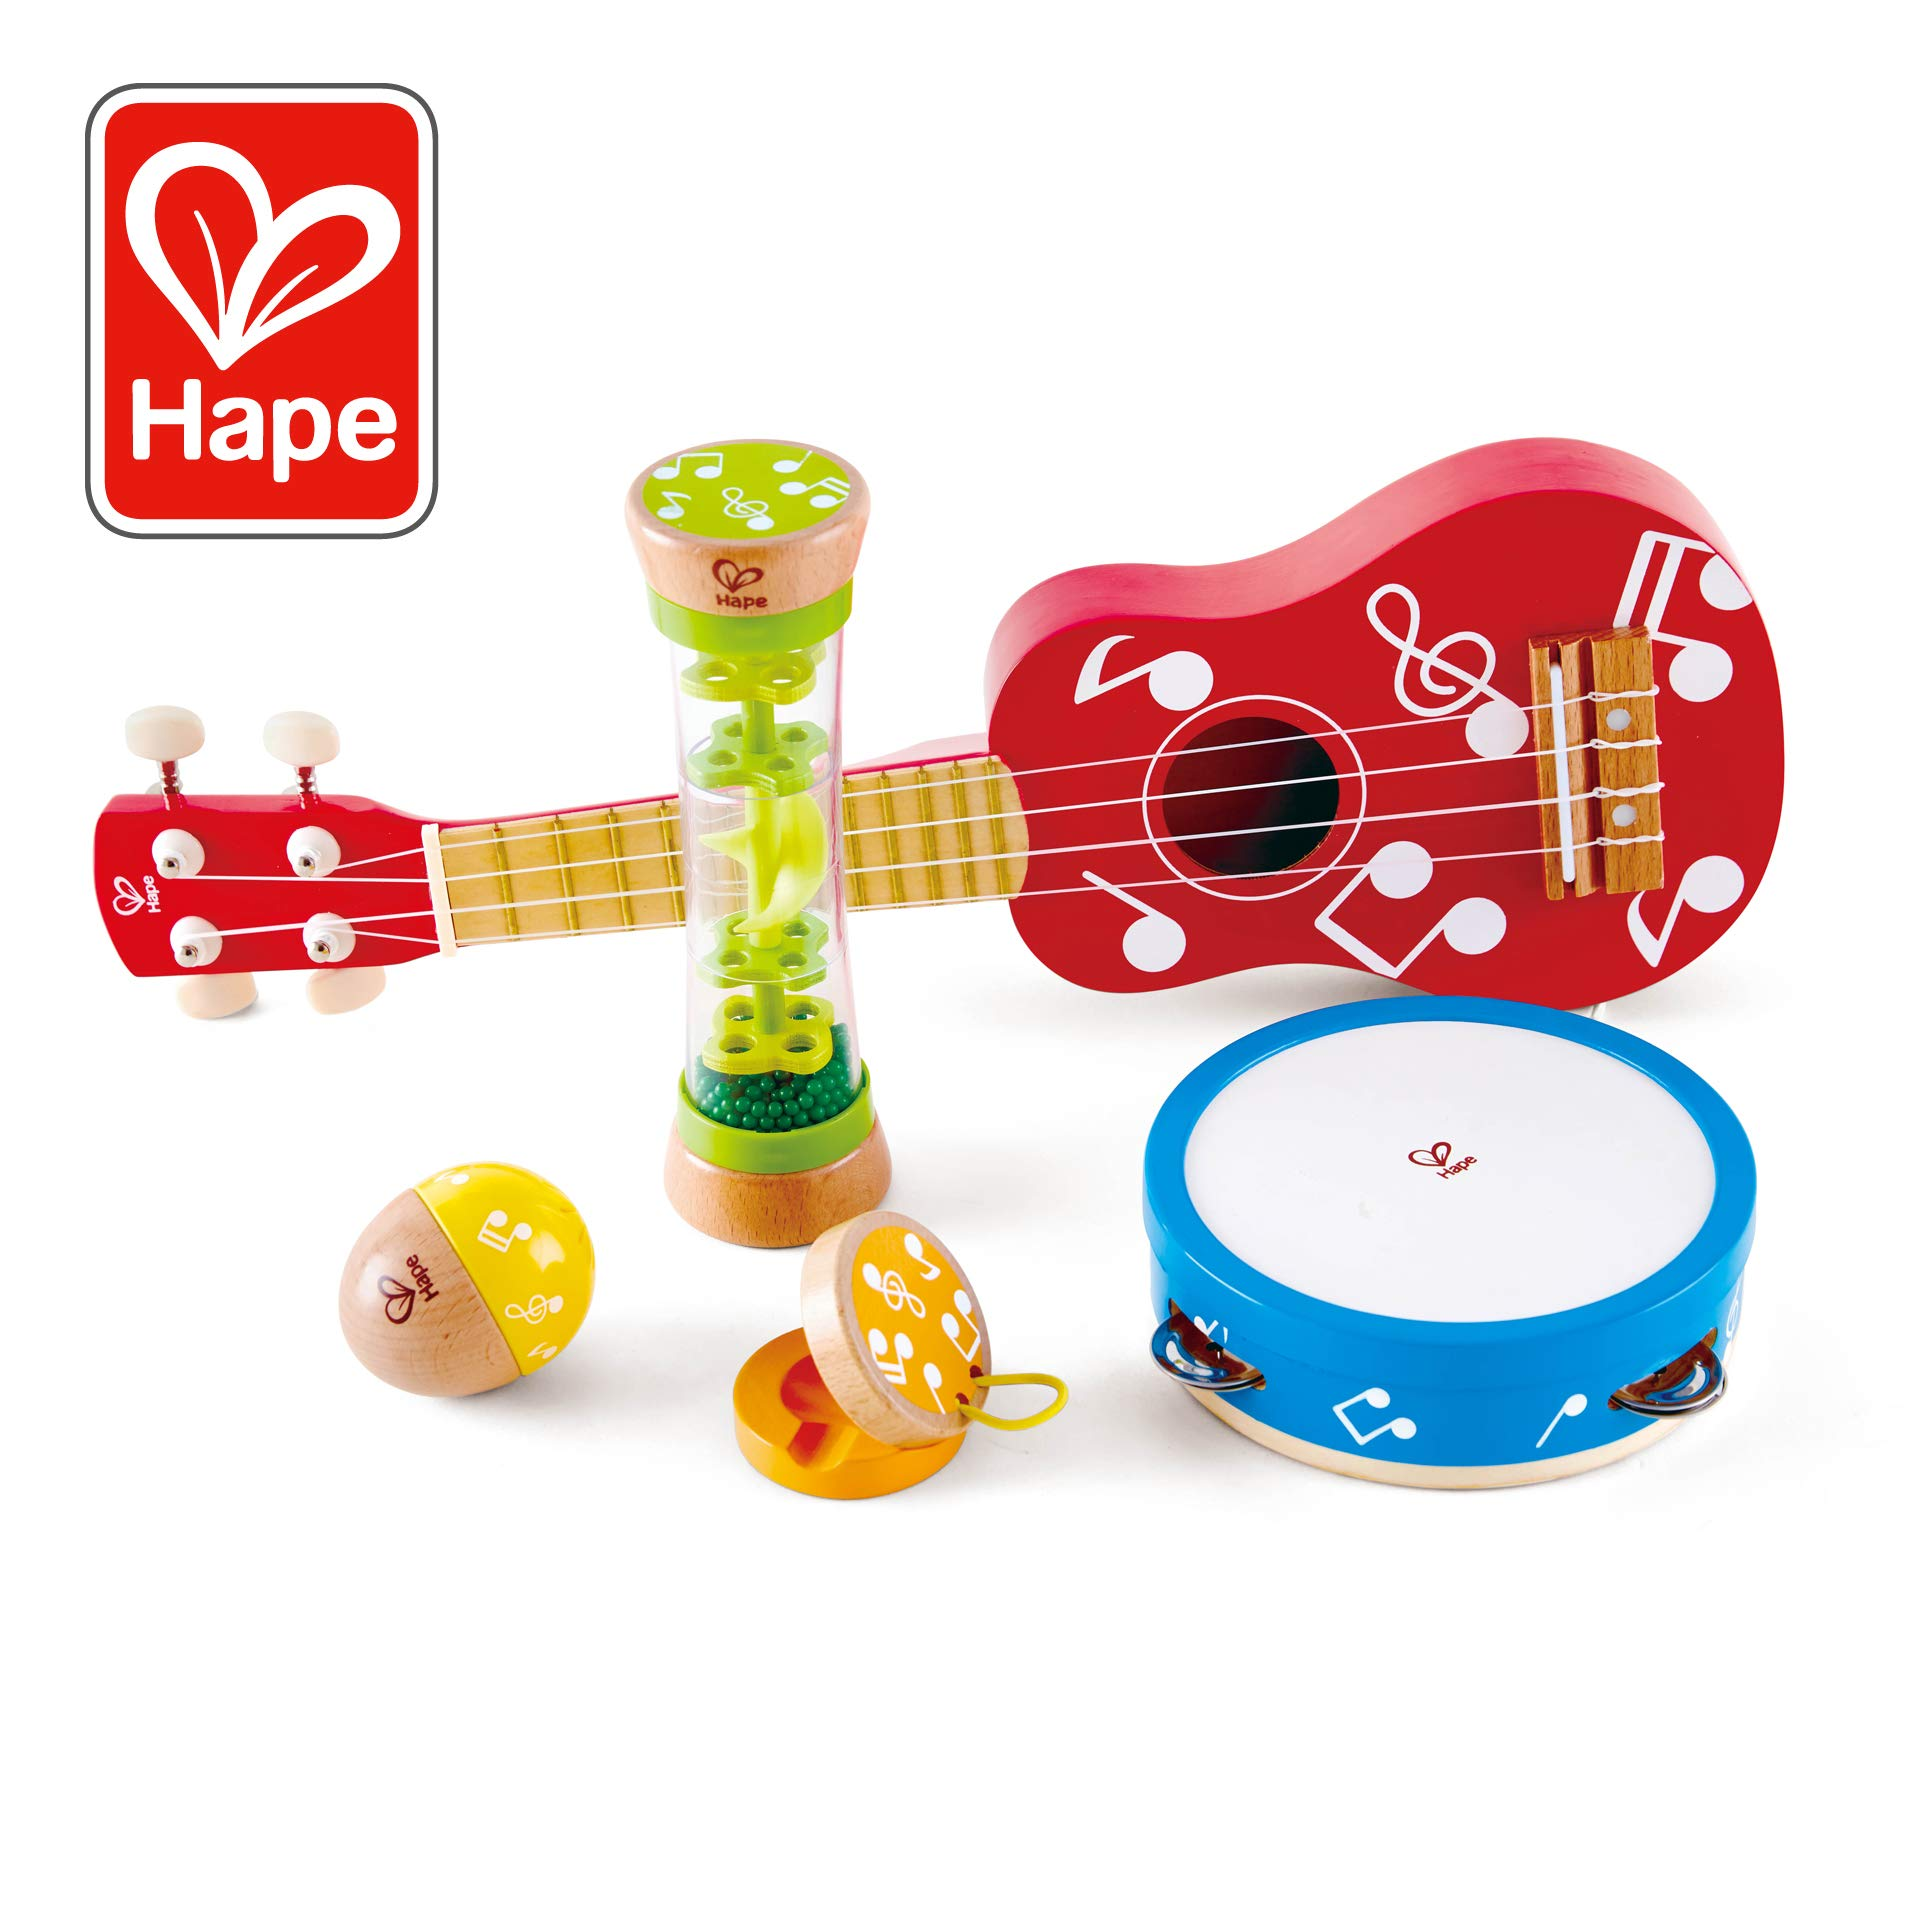 Hape Mini Band Instrument Set | Five Piece Wooden Instrument Music Set for Kids Includes Ukulele, Tambourine, Clapper, Rattle and Rainmaker by Hape